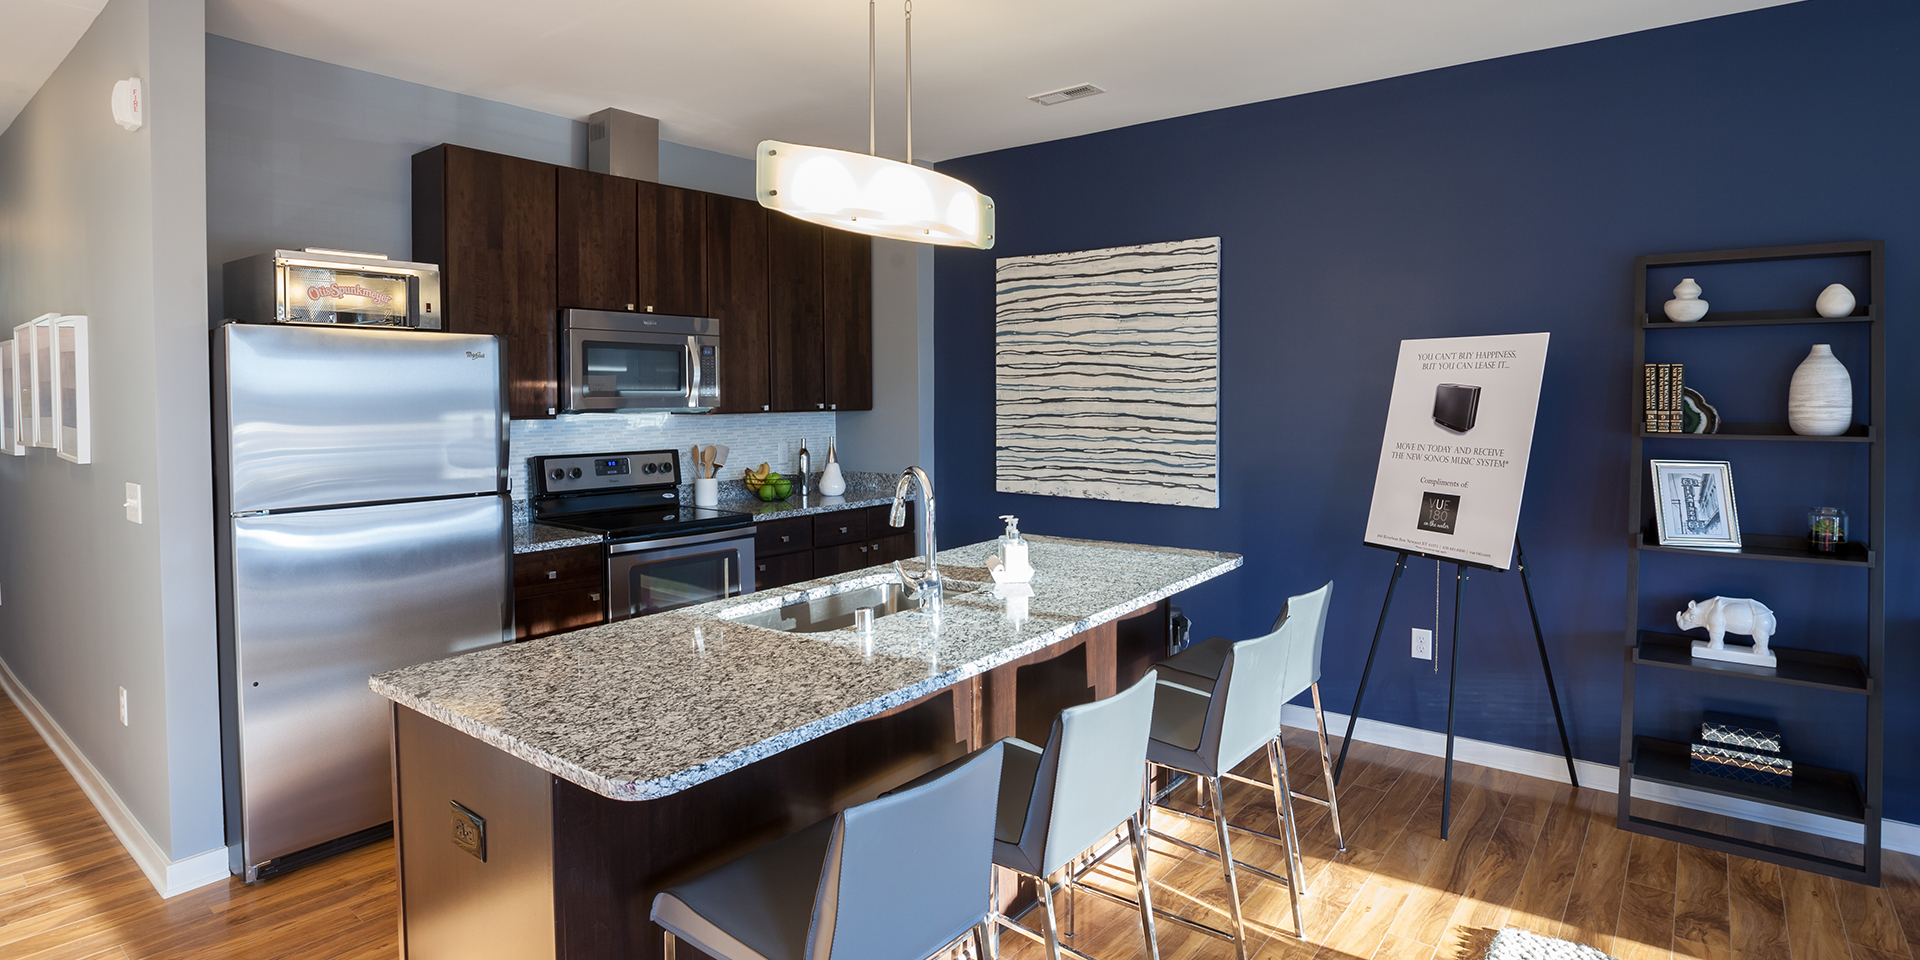 Fully appointed kitchens